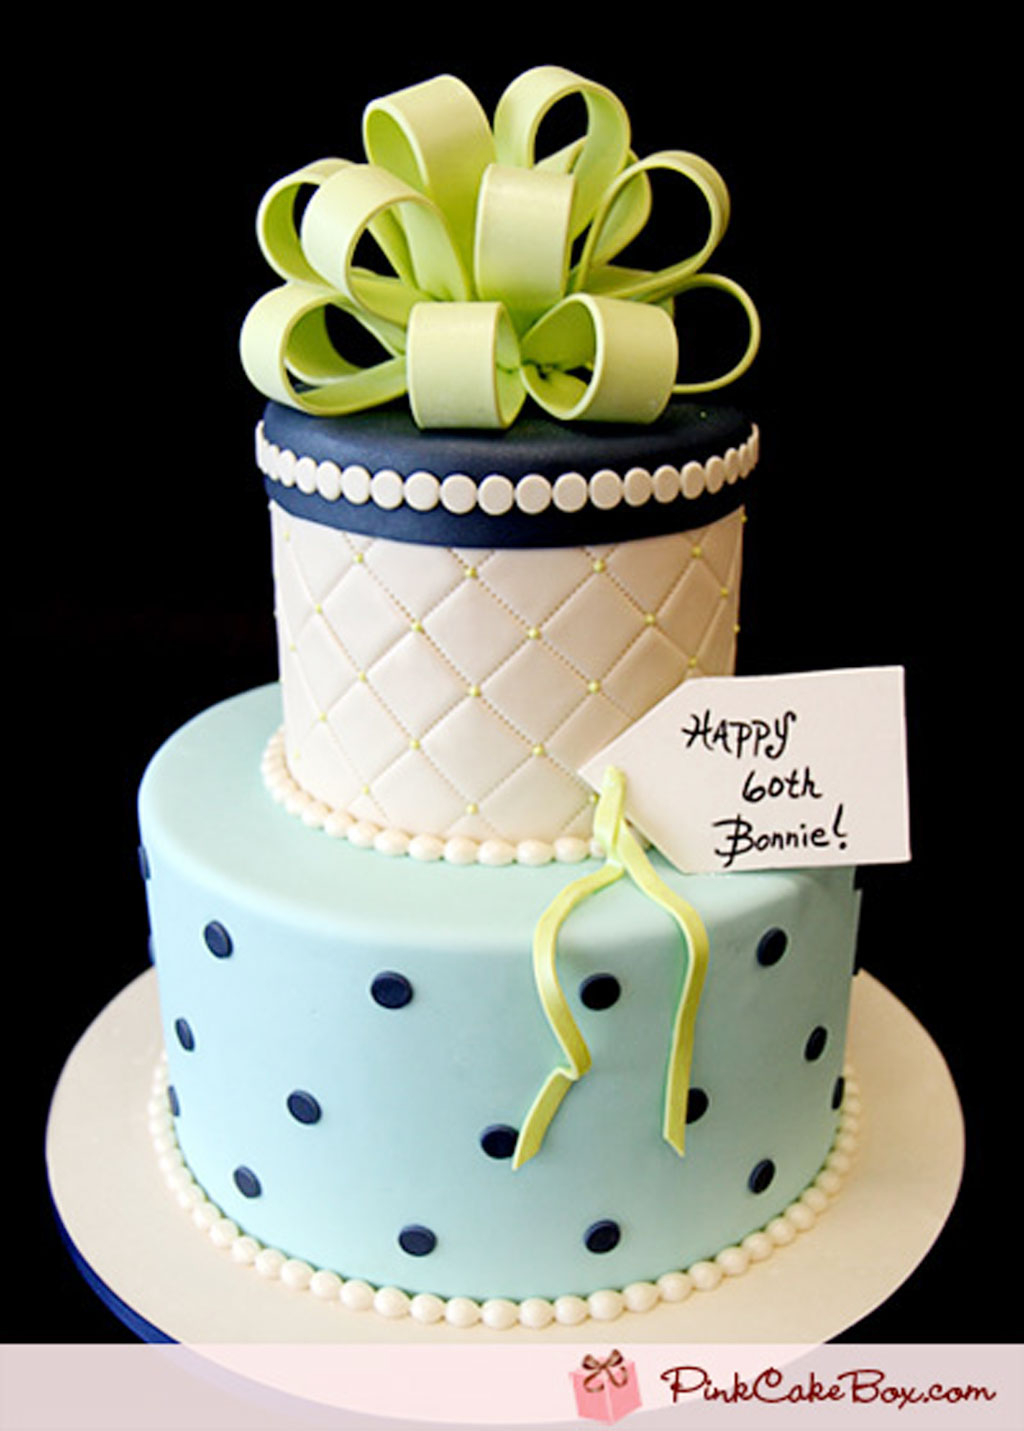 Cake Ideas For Women 50th Decorations Ladies